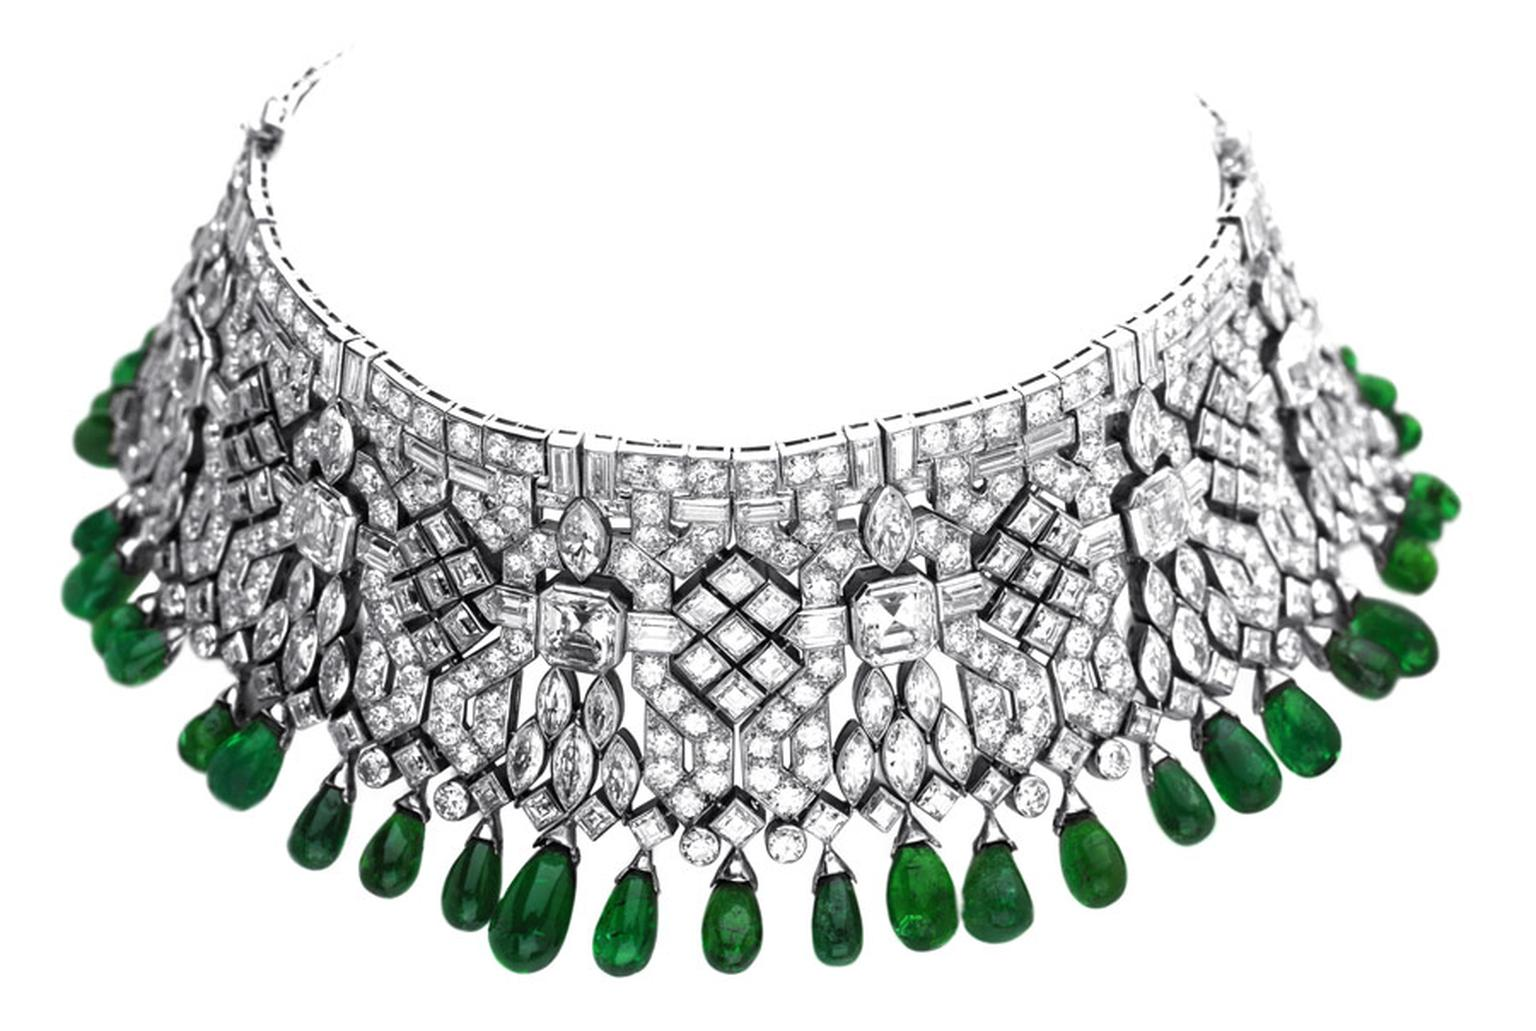 Van-Cleef-Arpels-Indian-bracelets-transformable-into-a-choker-ordered-by-Daisy-Fellowes-1928-Private-Collection_3.jpg